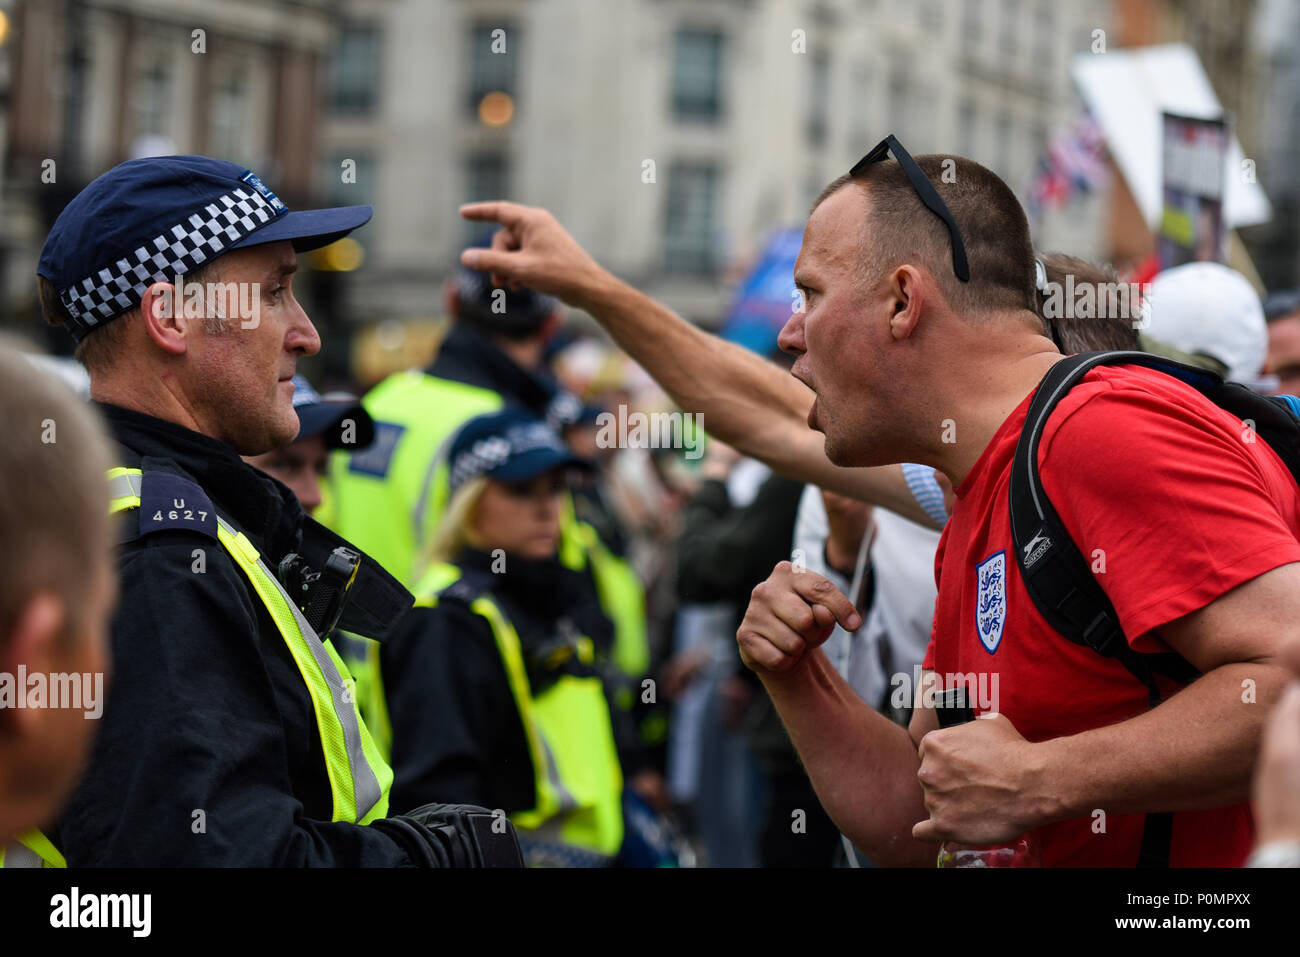 supporters-of-tommy-robinson-such-as-the-edl-protested-in-london-demonstrating-for-his-release-at-times-this-turned-to-violence-against-police-P0MPXX.jpg